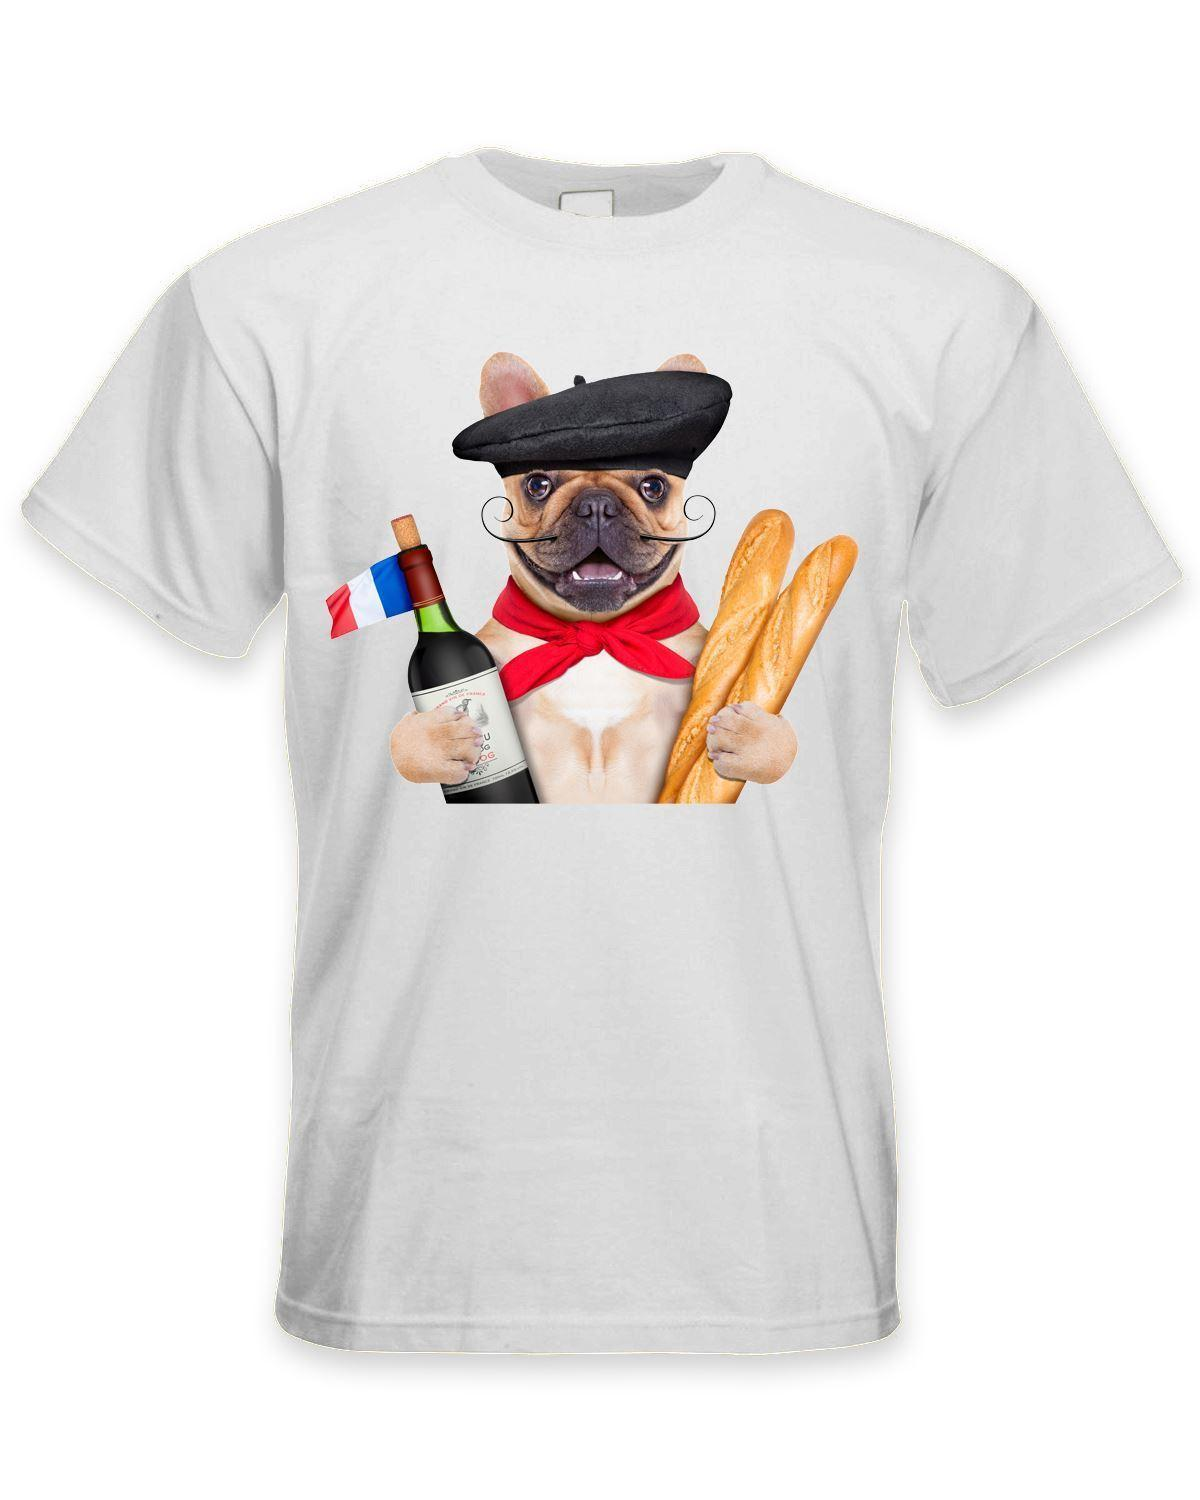 French Bulldog With Wine and Baguette Men's T-Shirt - Funny Pet Bull Dog Style Round Style tshirt